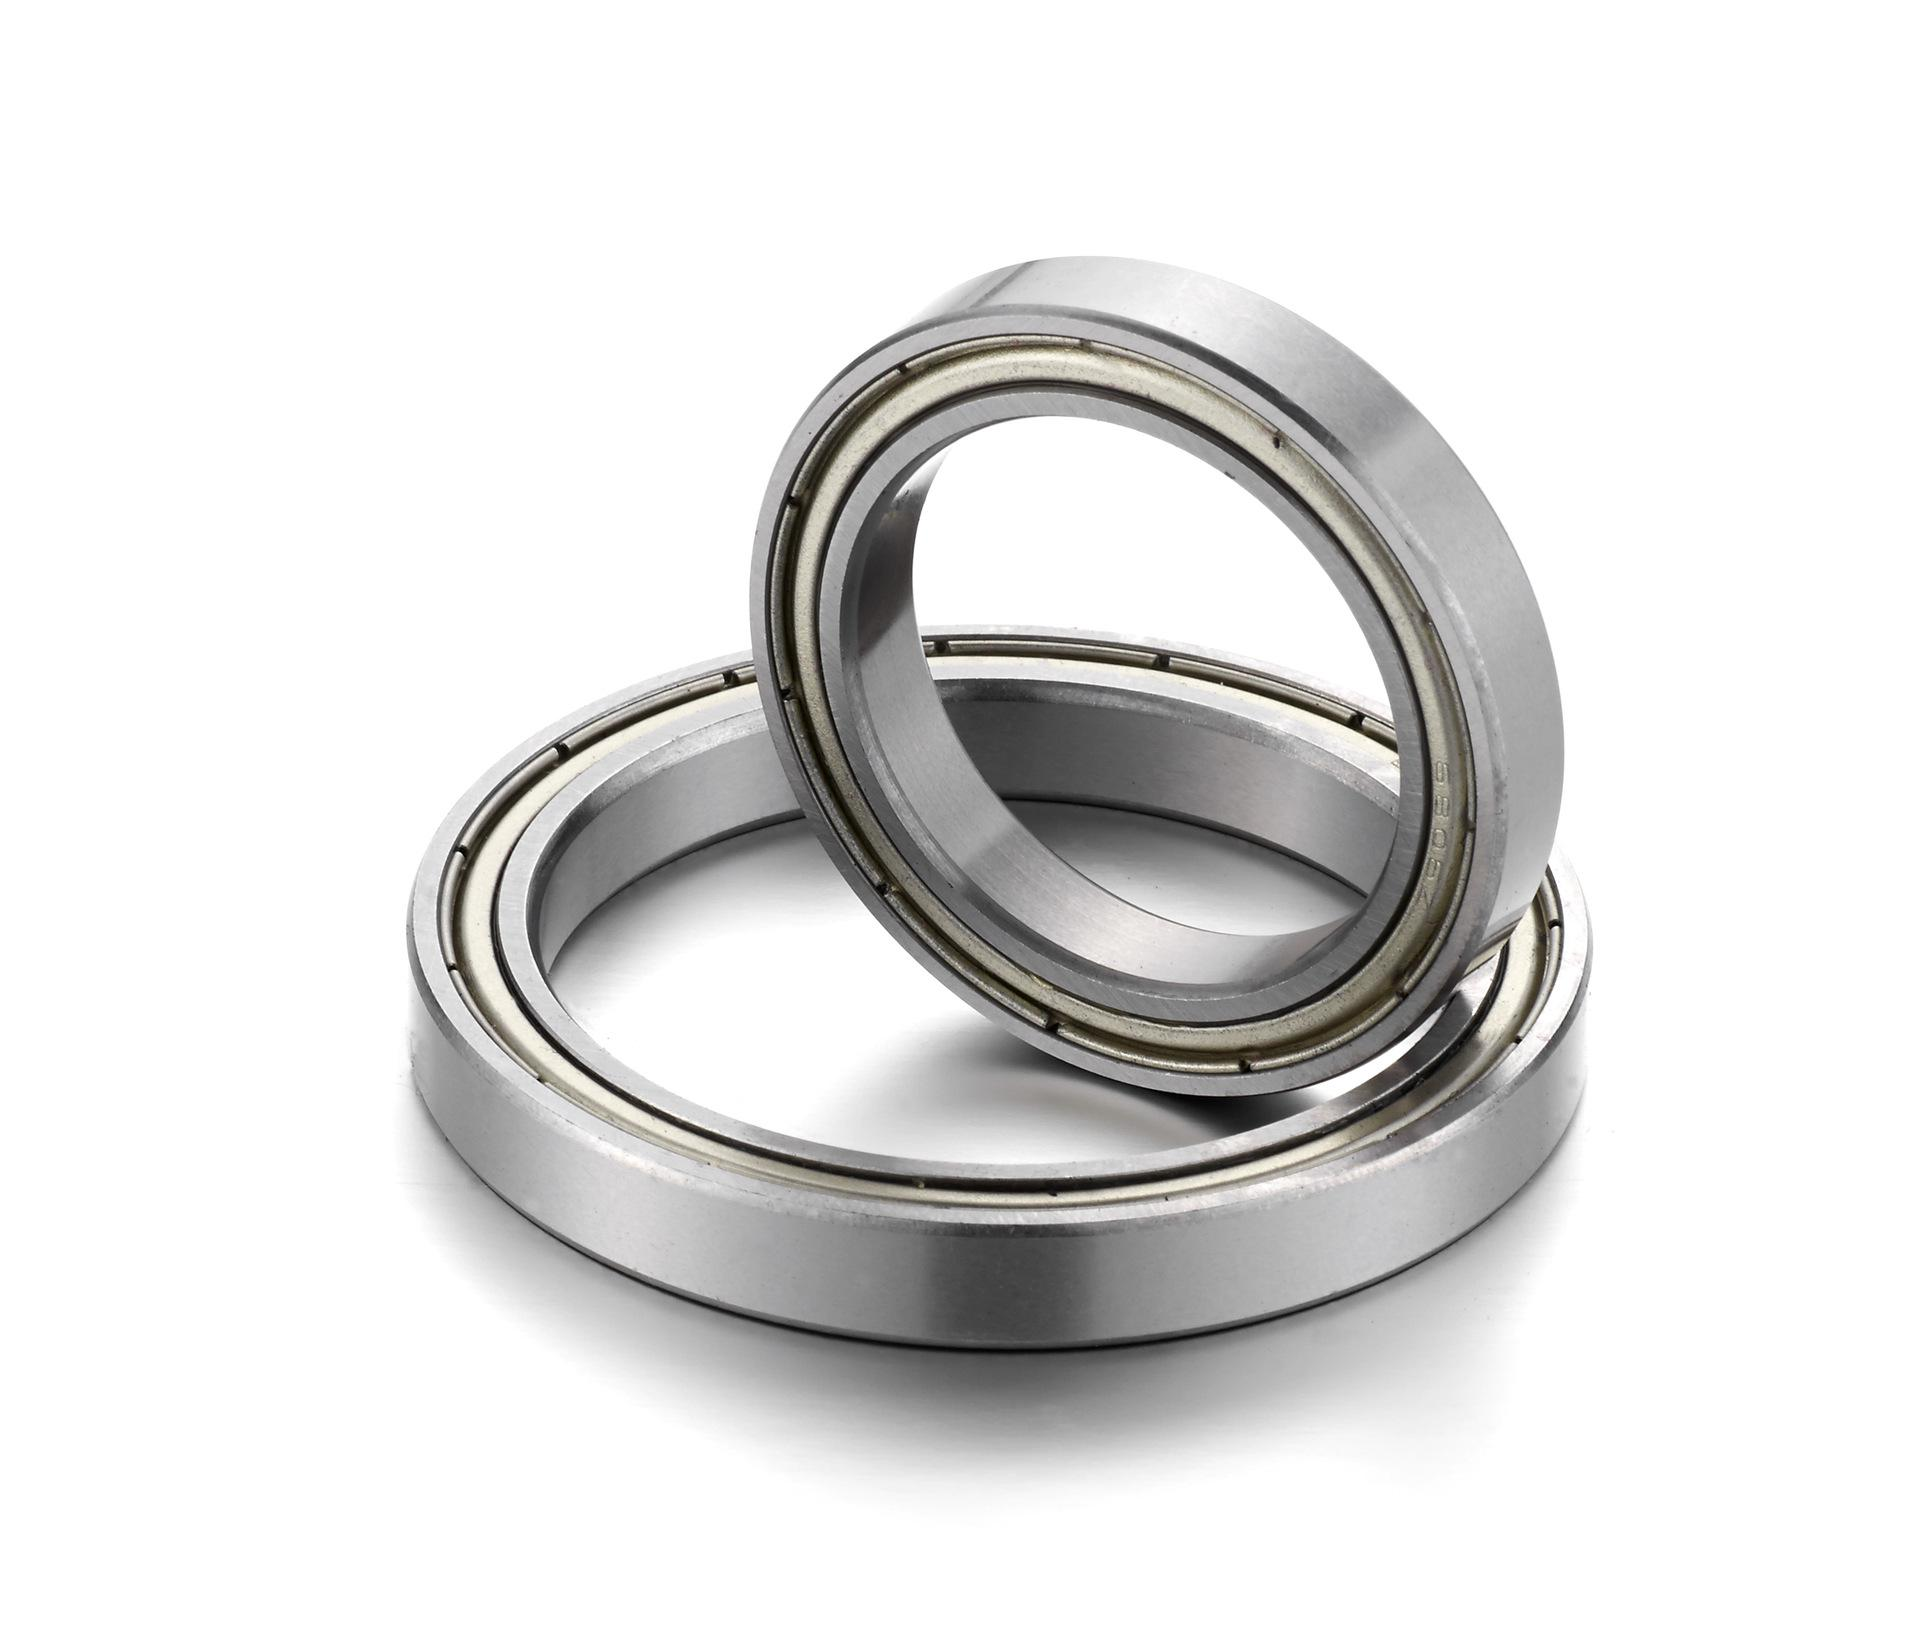 S6808ZZ ABEC-1  40x52x7mm Stainless Steel Ball Bearings S6808Z S61808ZZ gcr15 6326 zz or 6326 2rs 130x280x58mm high precision deep groove ball bearings abec 1 p0